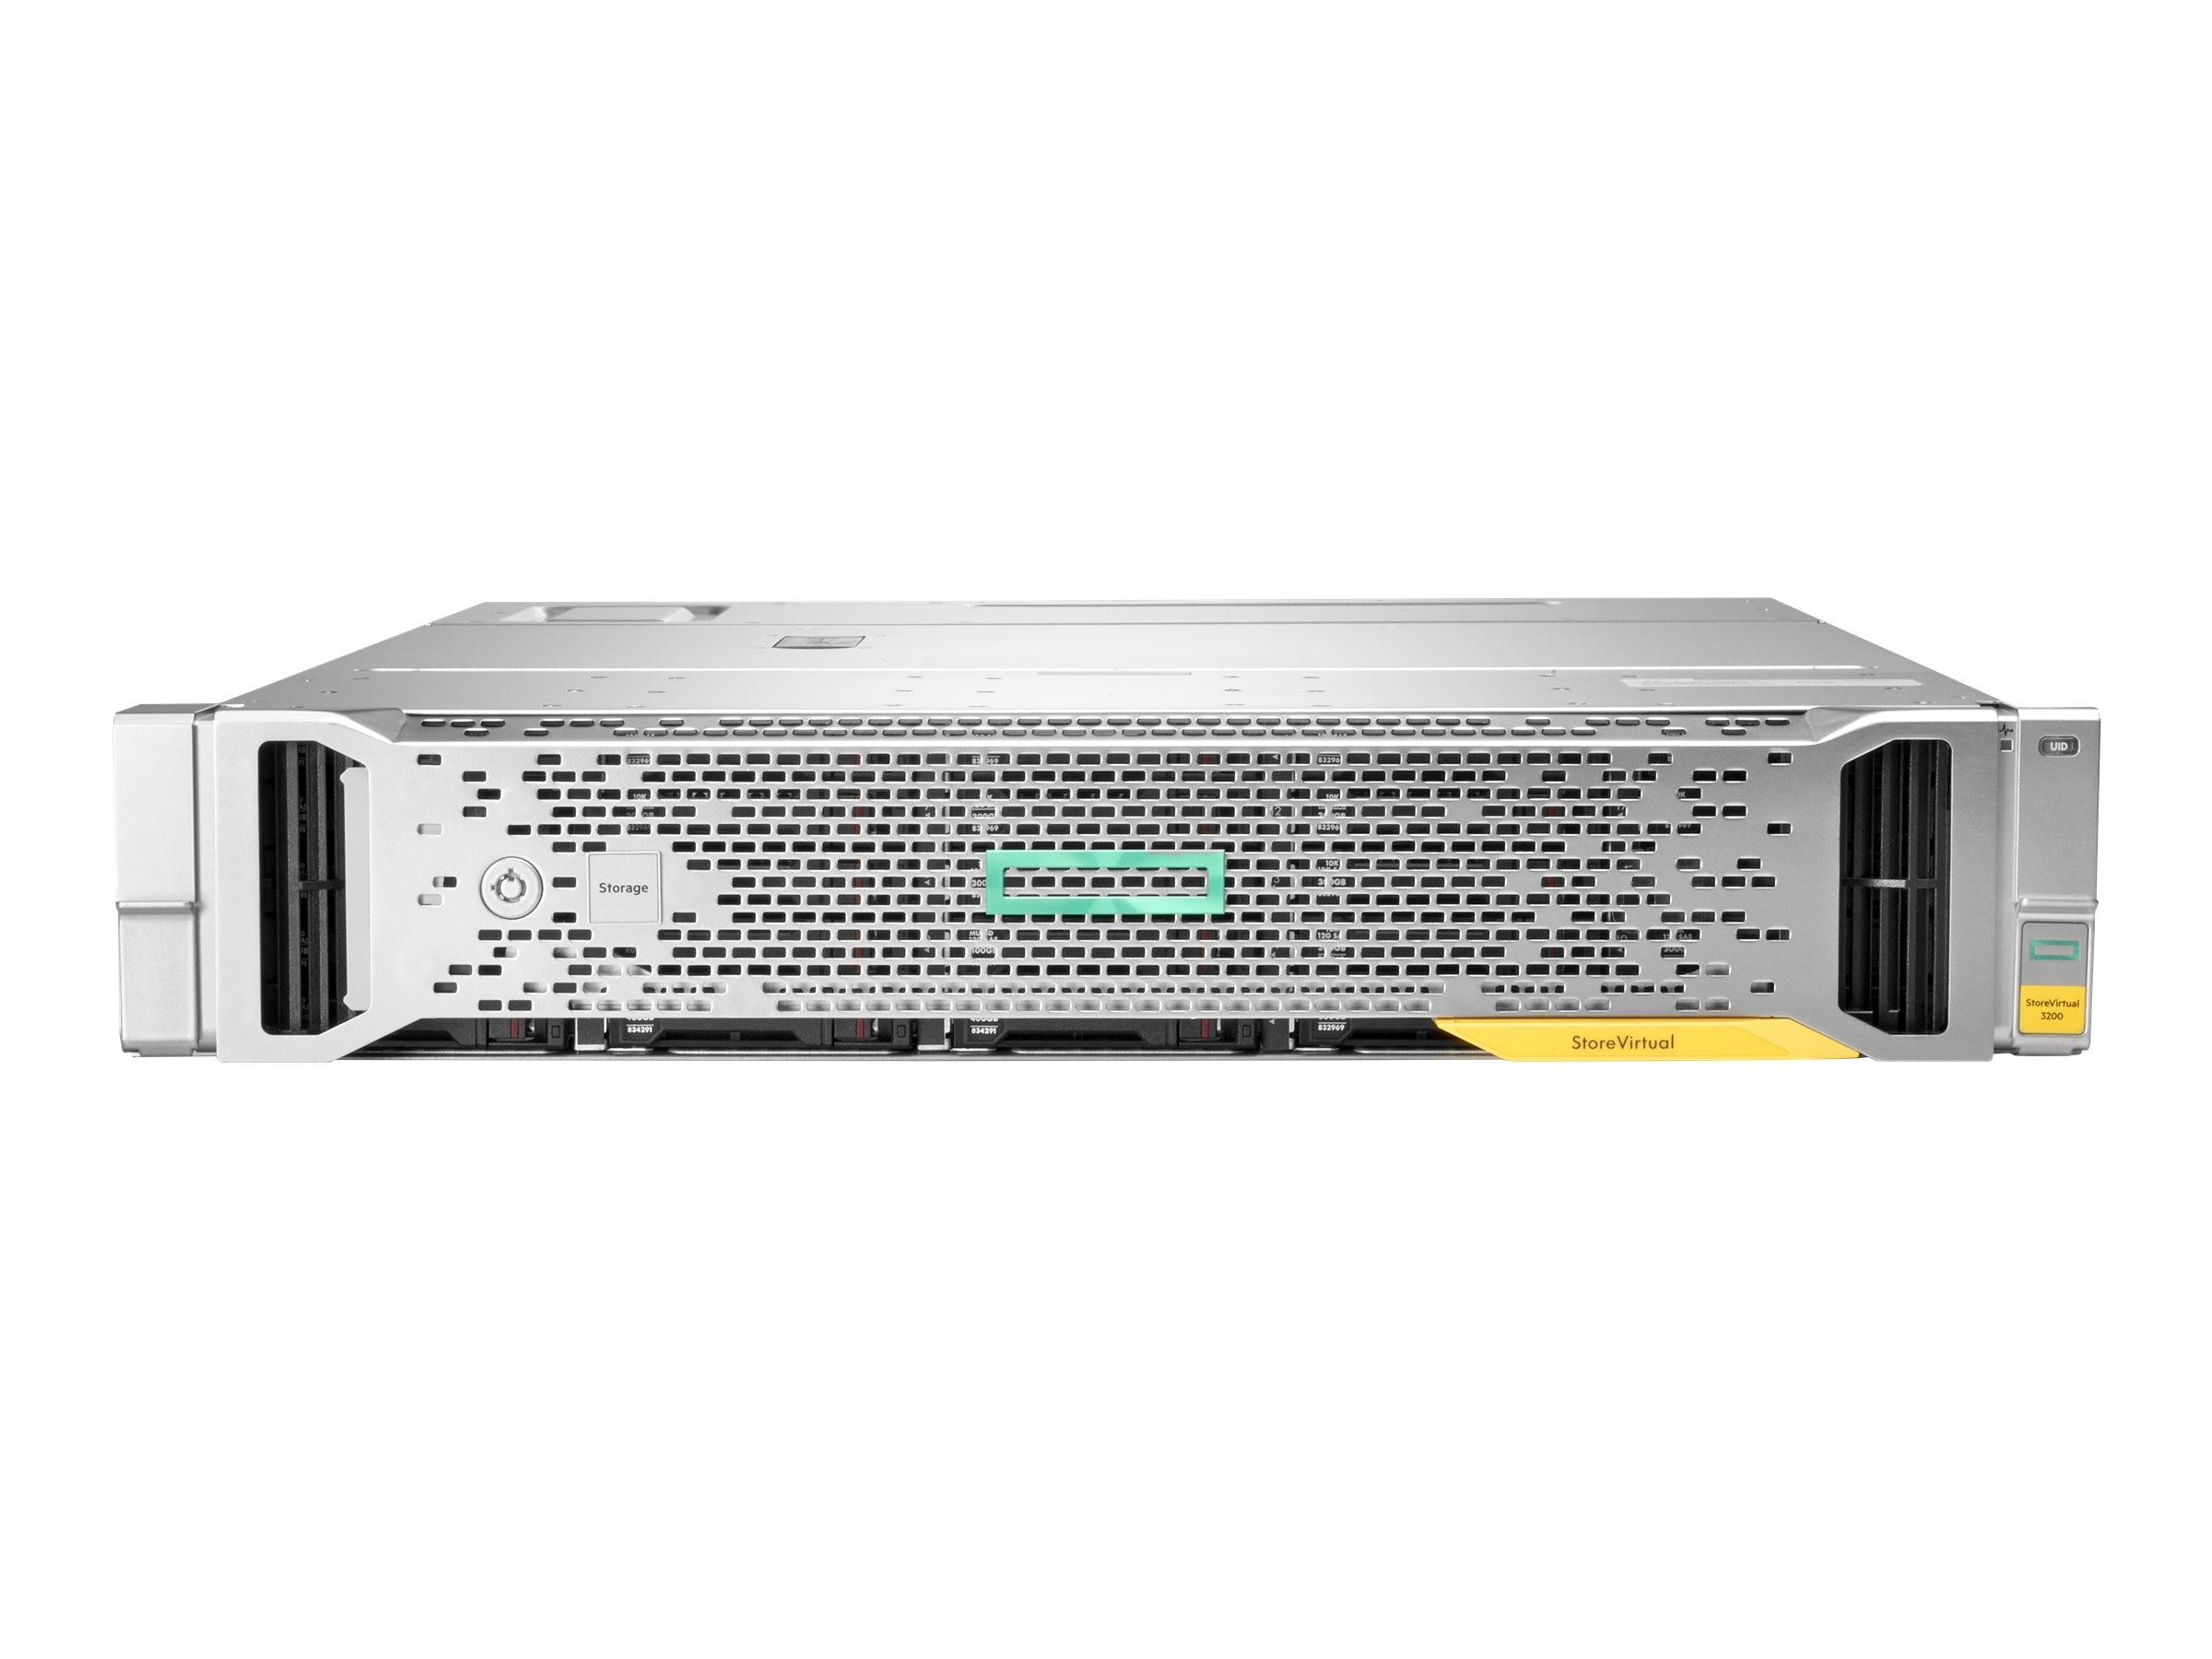 Hewlett Packard Enterprise N9X24A Image 2